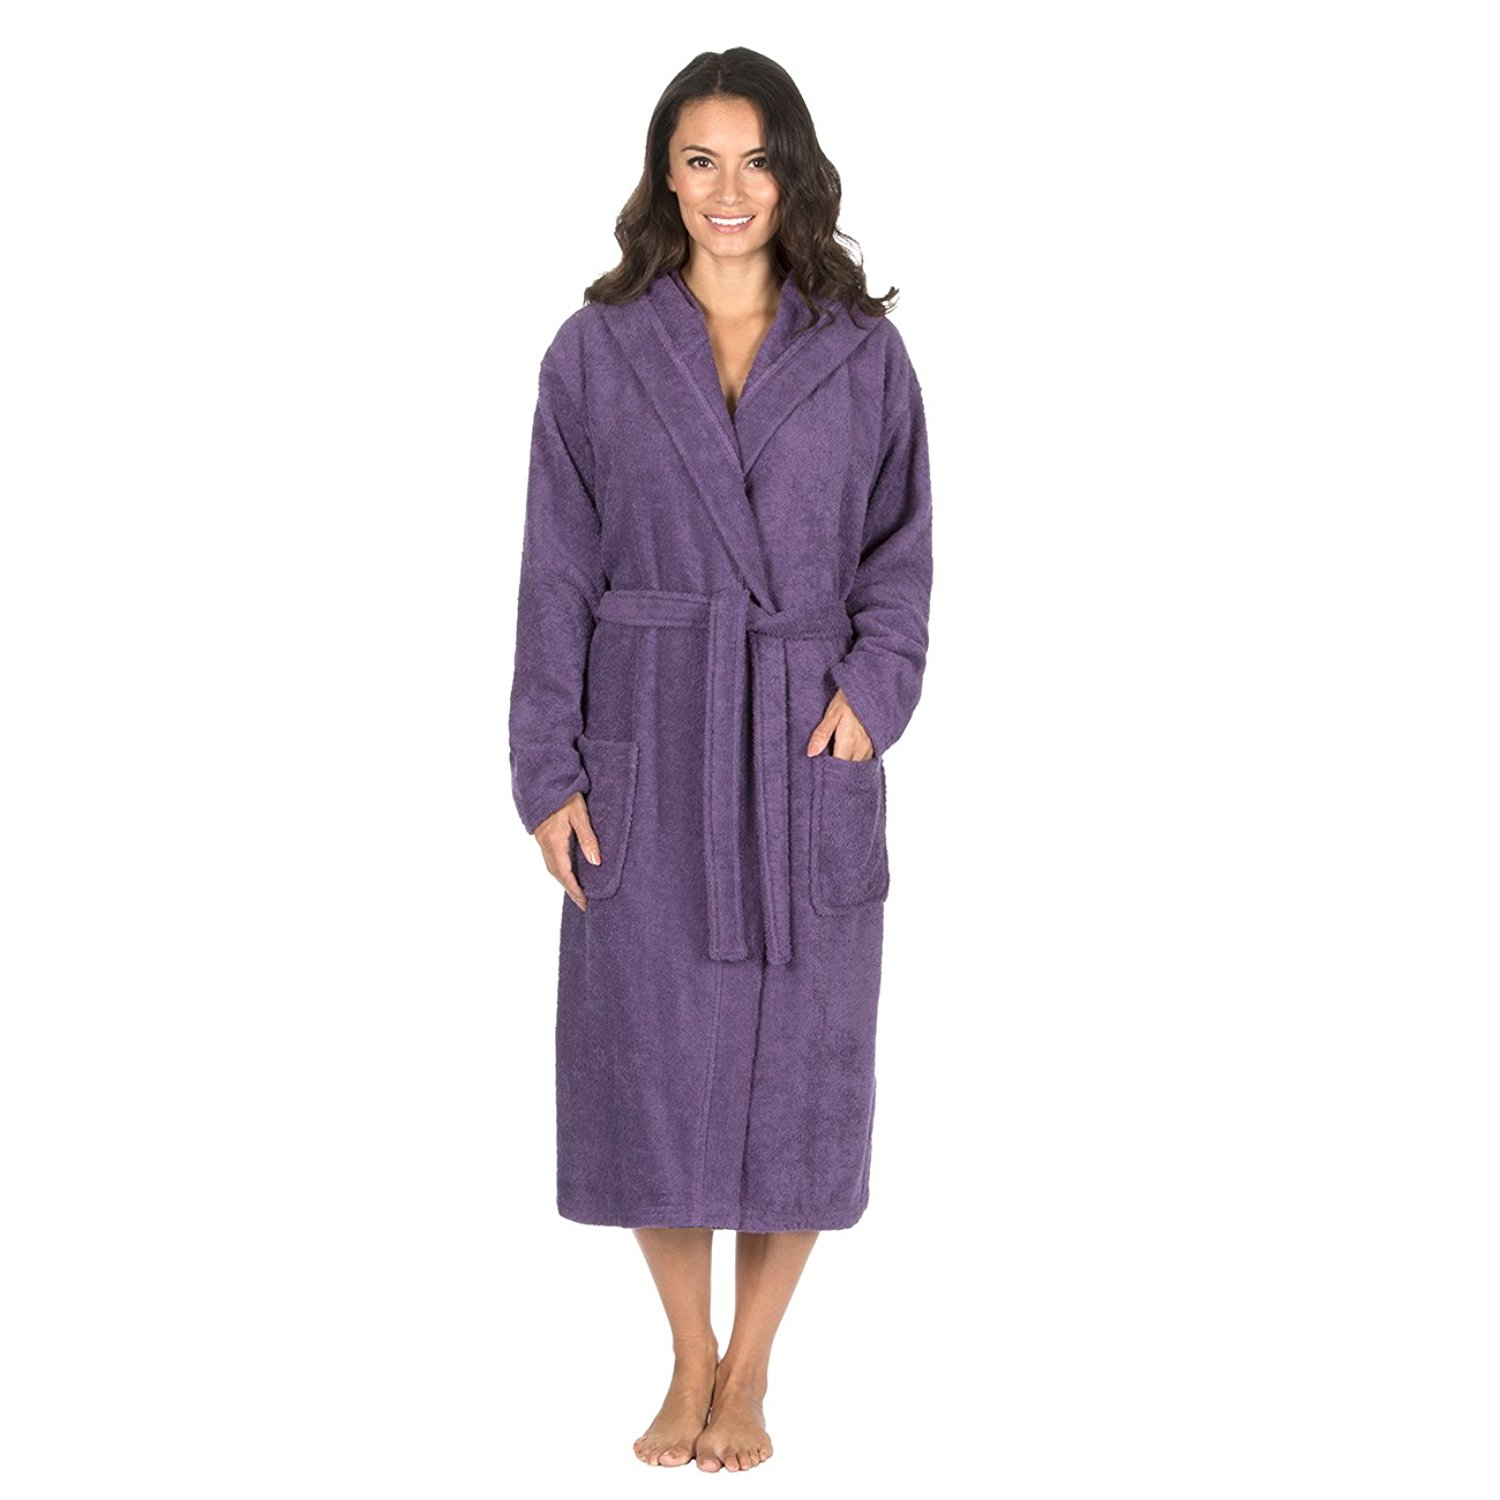 a01b088385 Get Quotations · Forever Dreaming Ladies 100% Cotton Terry Towelling Hooded  Robe